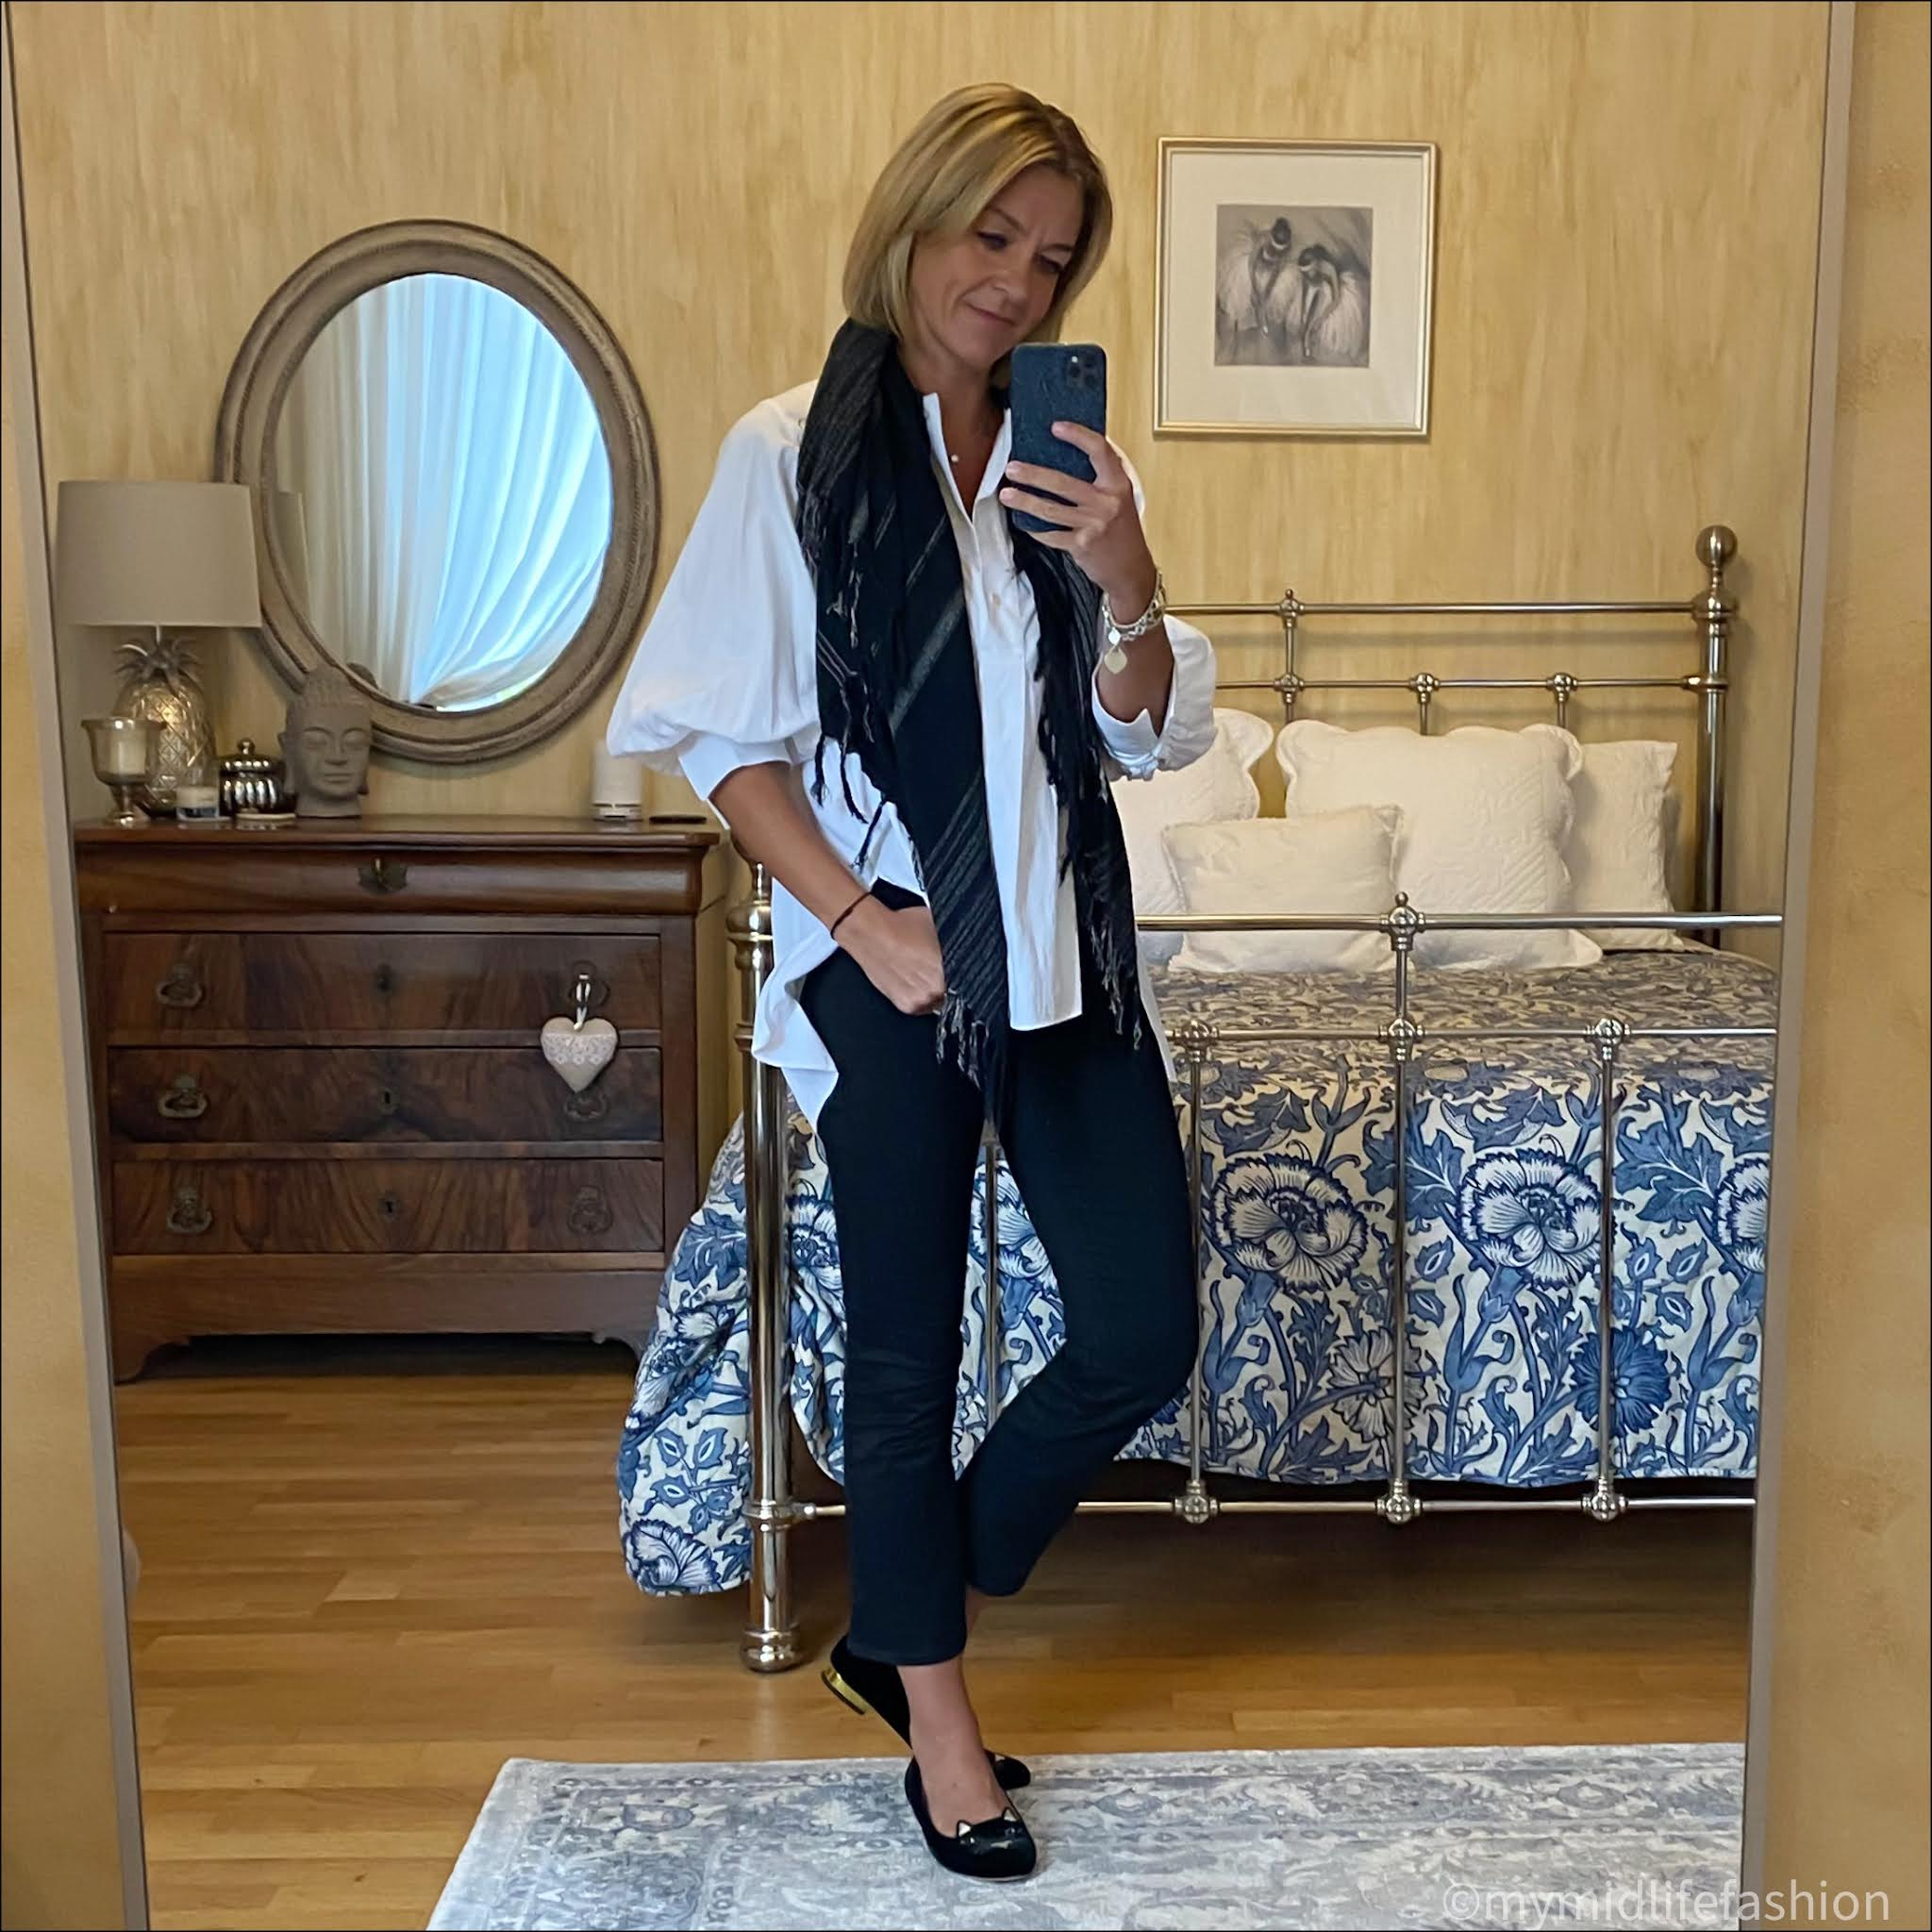 my midlife fashion, Charlotte Olympia kitty cat face embroidered velvet flats, Isabel Marant Etoile stripe scarf, Massimo Dutti white blouse, j crew kick flare jeans